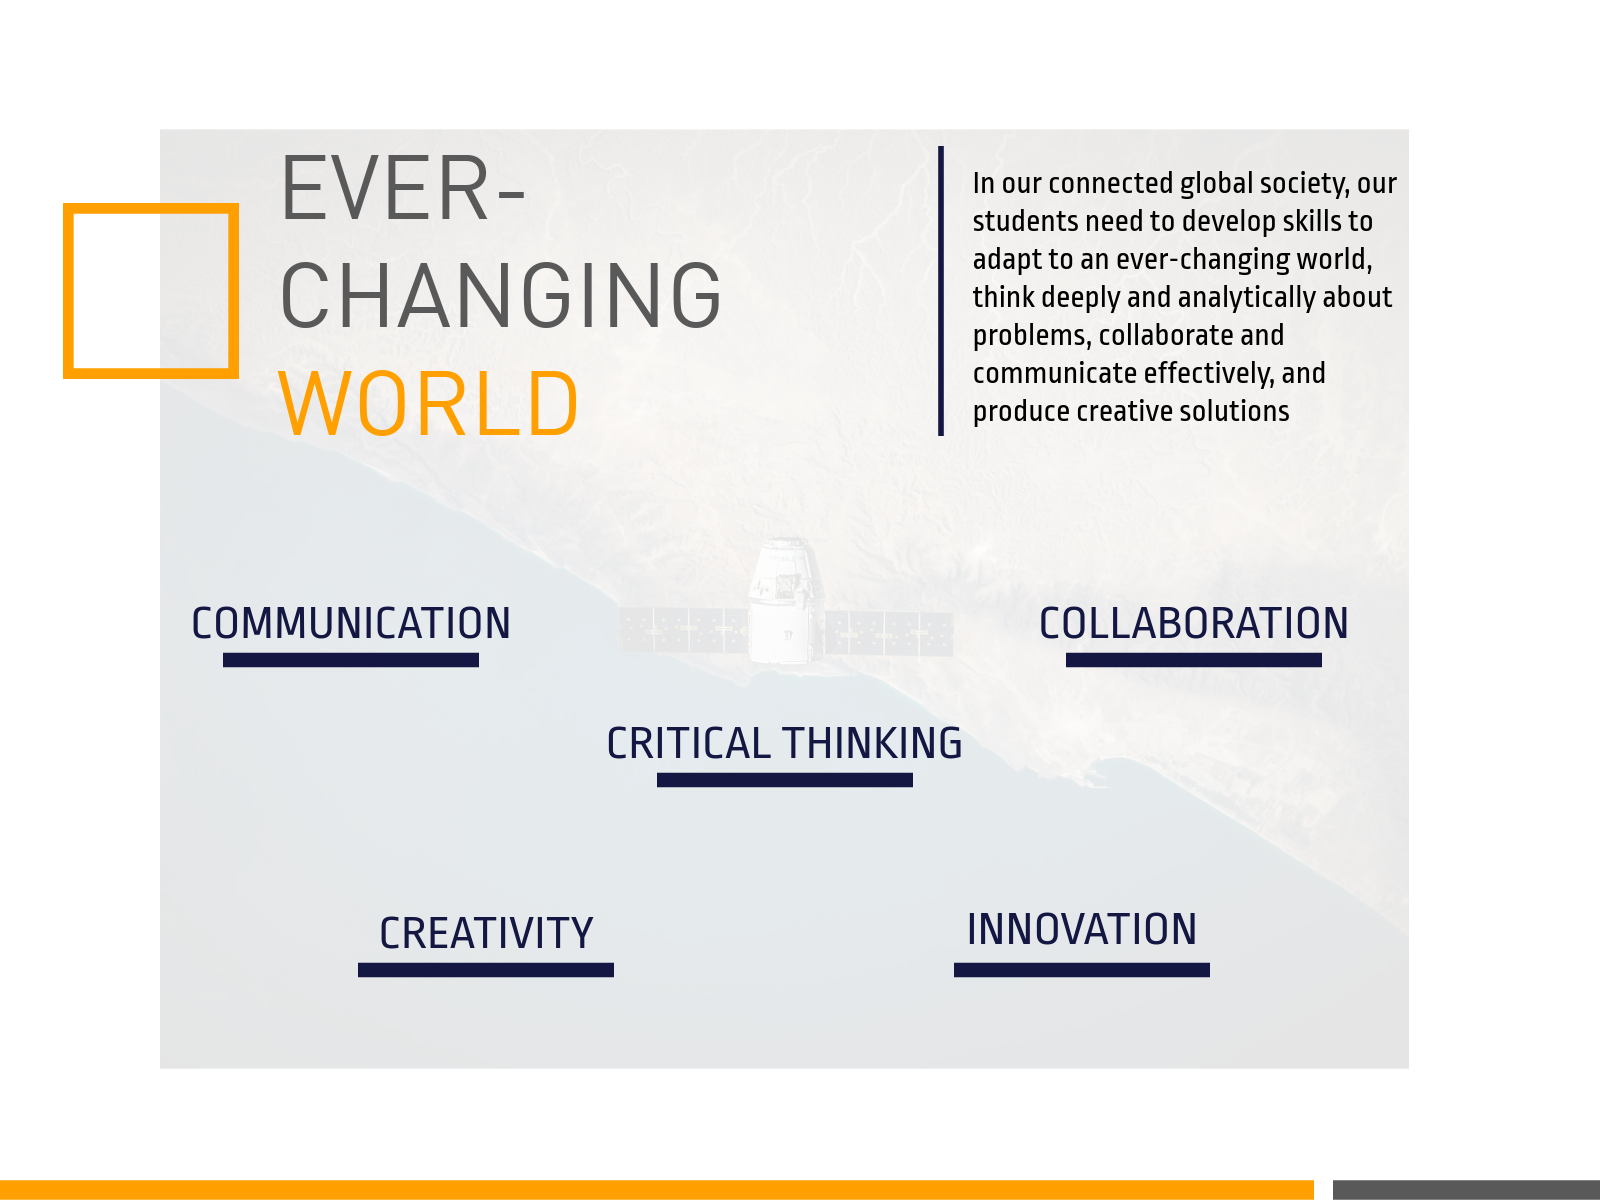 Ever changing world image: Skills students need:Communication, Critical thinking, Collaboration, Creativity, and Innovation